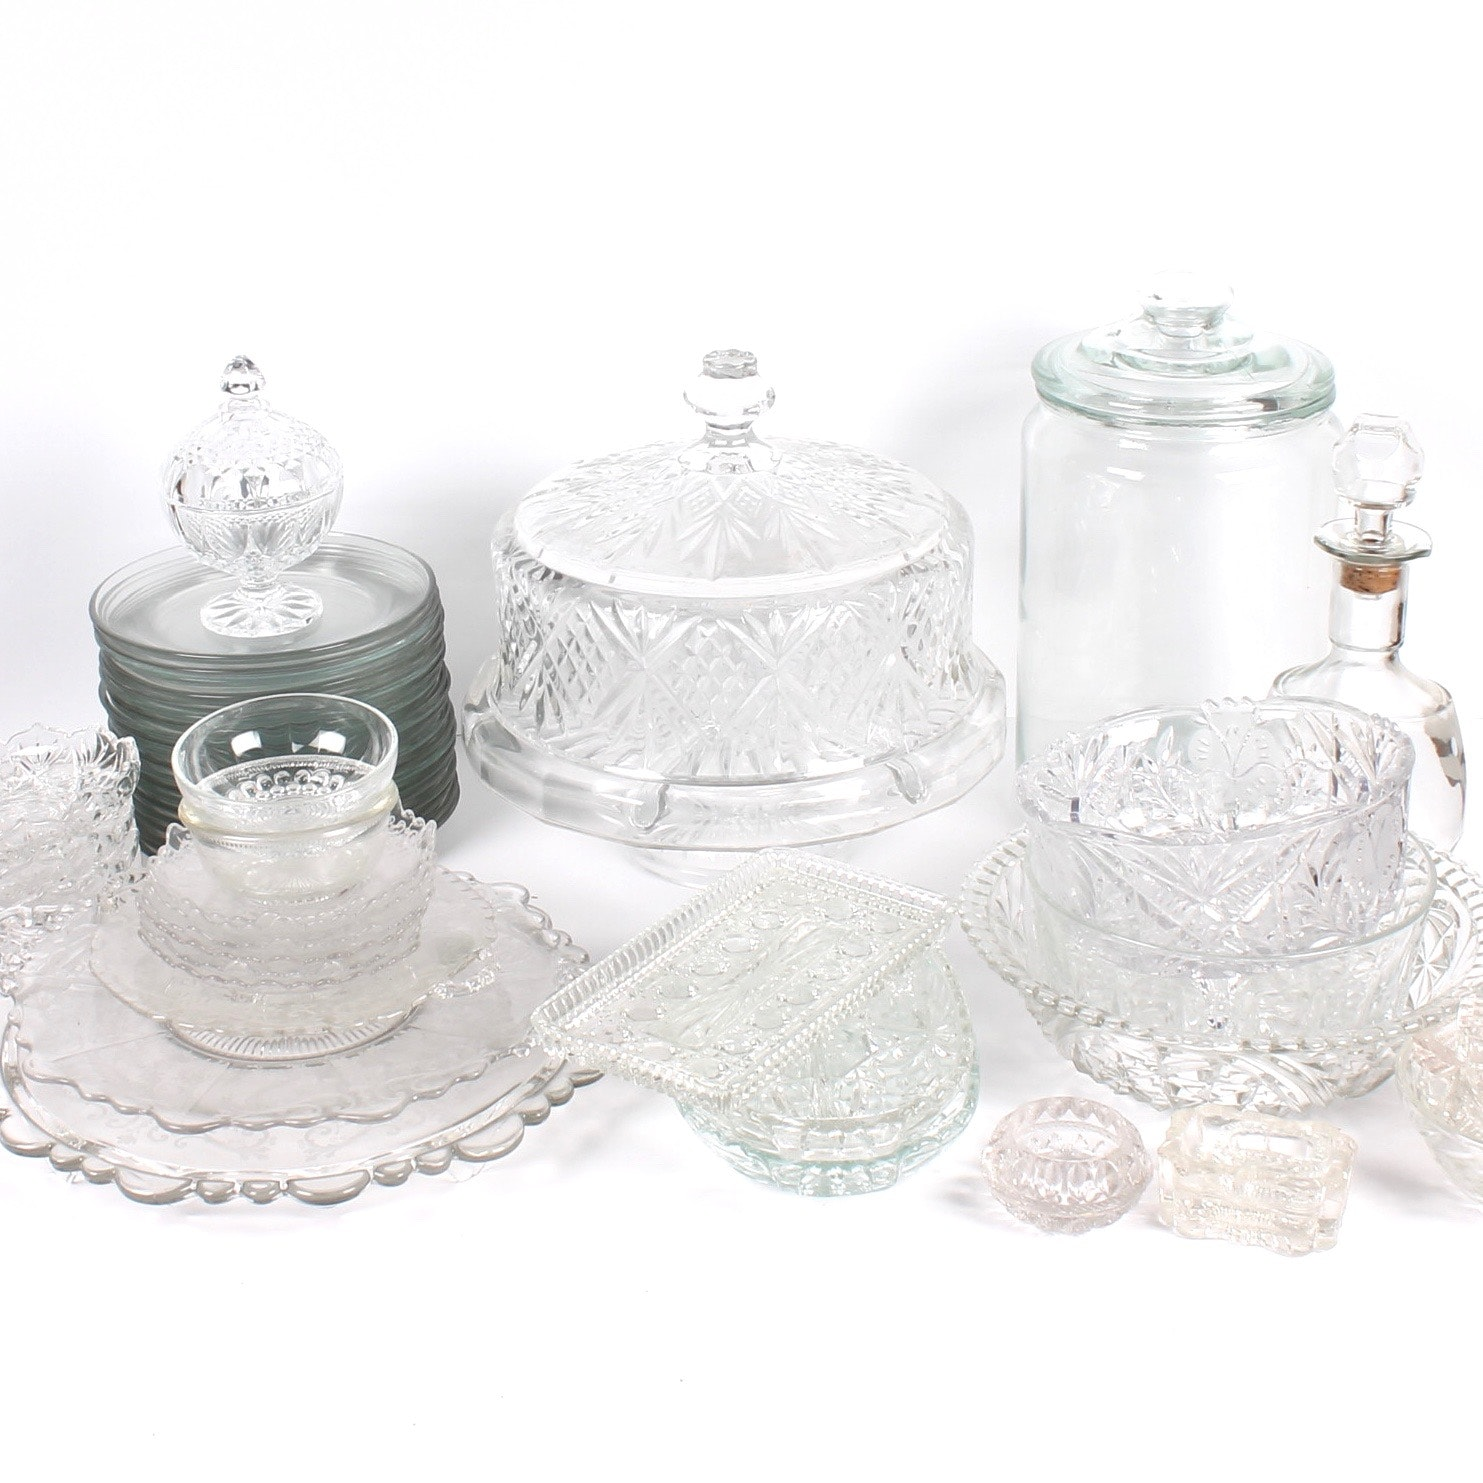 Pressed Glass Tableware Collection